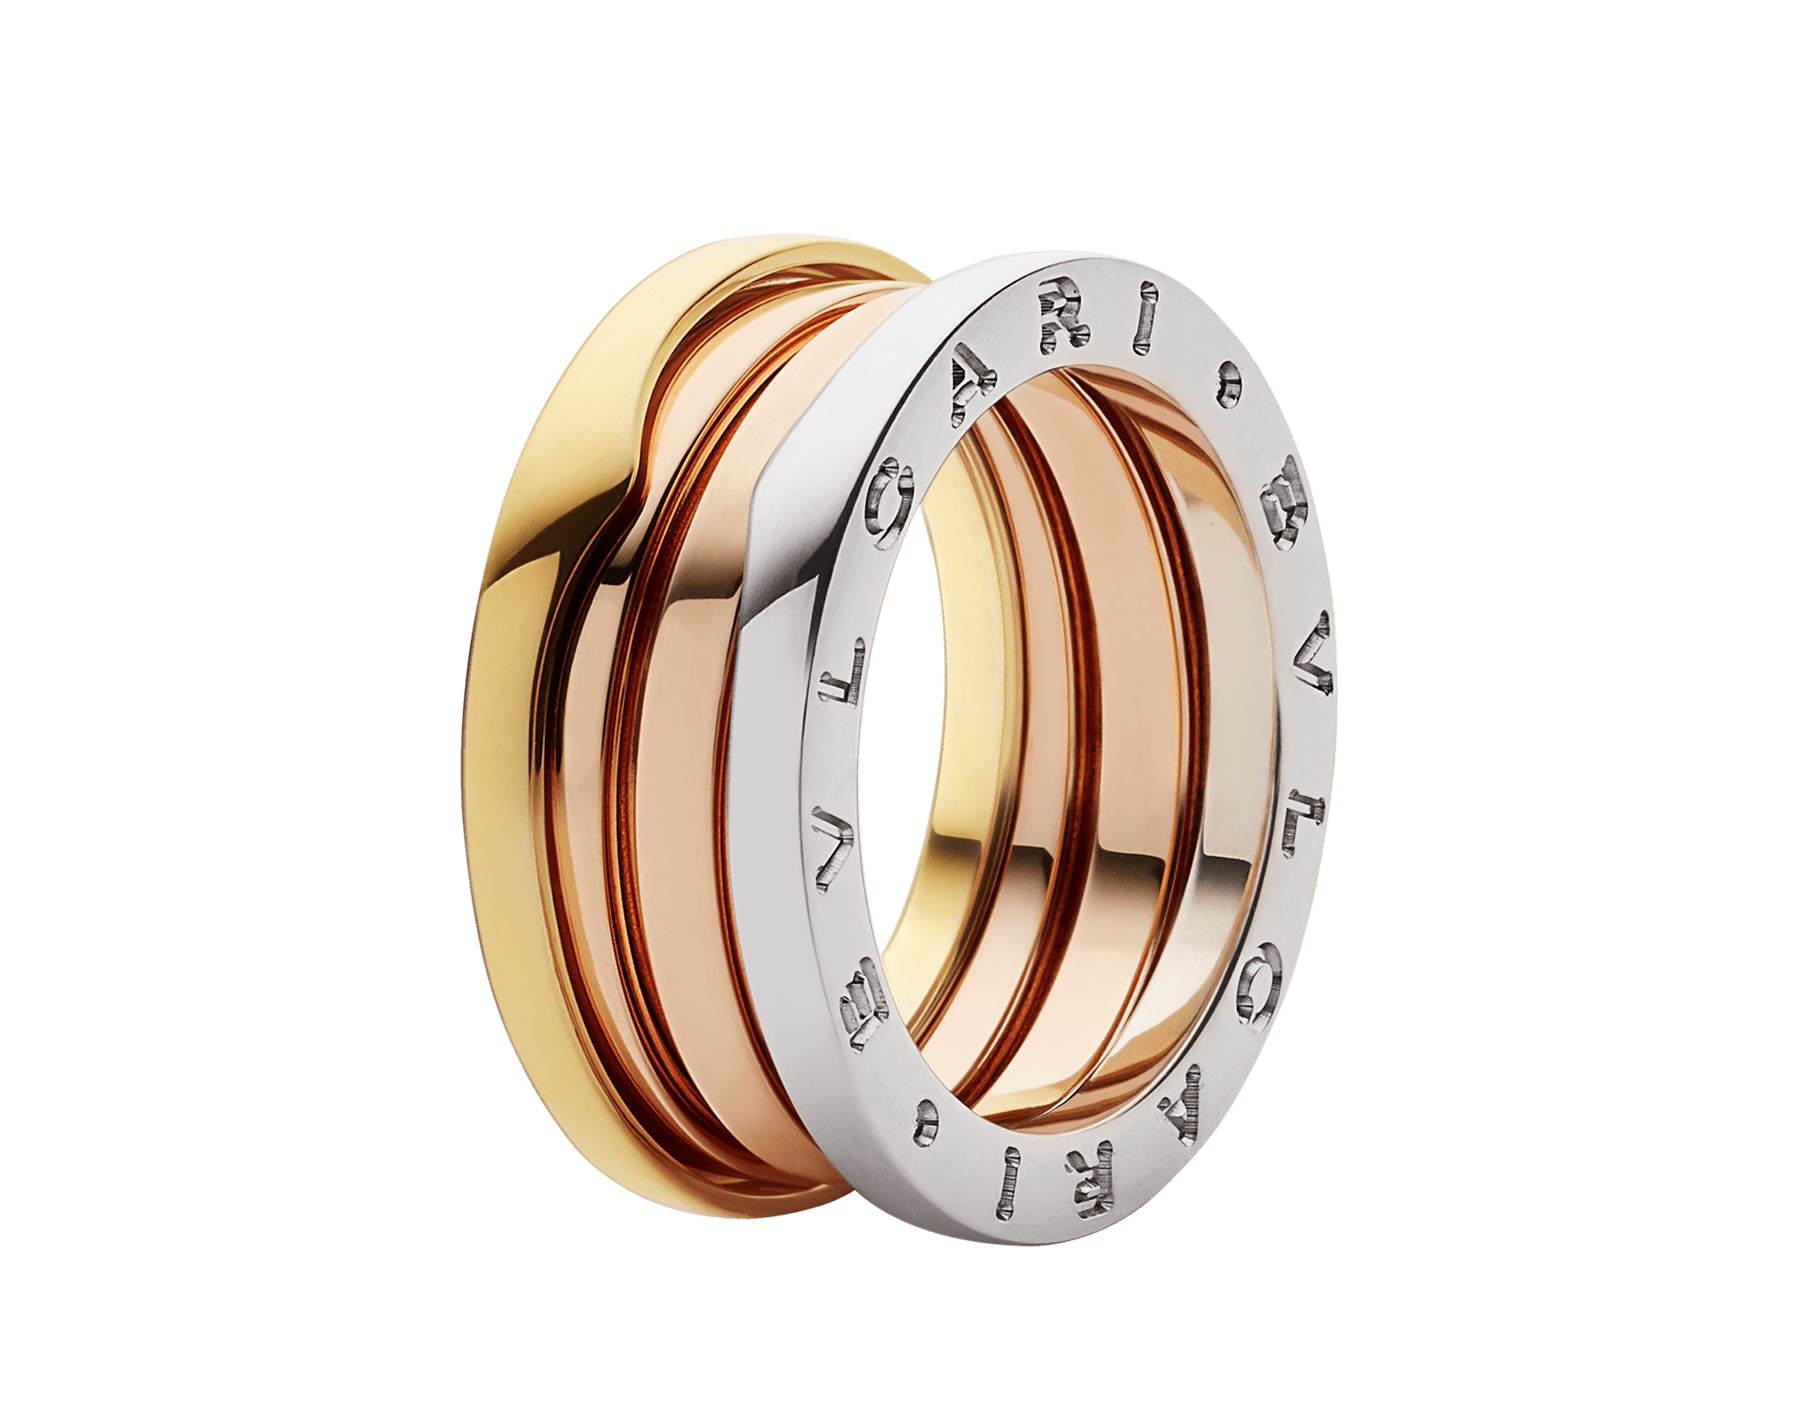 B.zero1 three-band ring in 18 kt rose, white and yellow gold. B-zero1-3-bands-AN857652 image 2